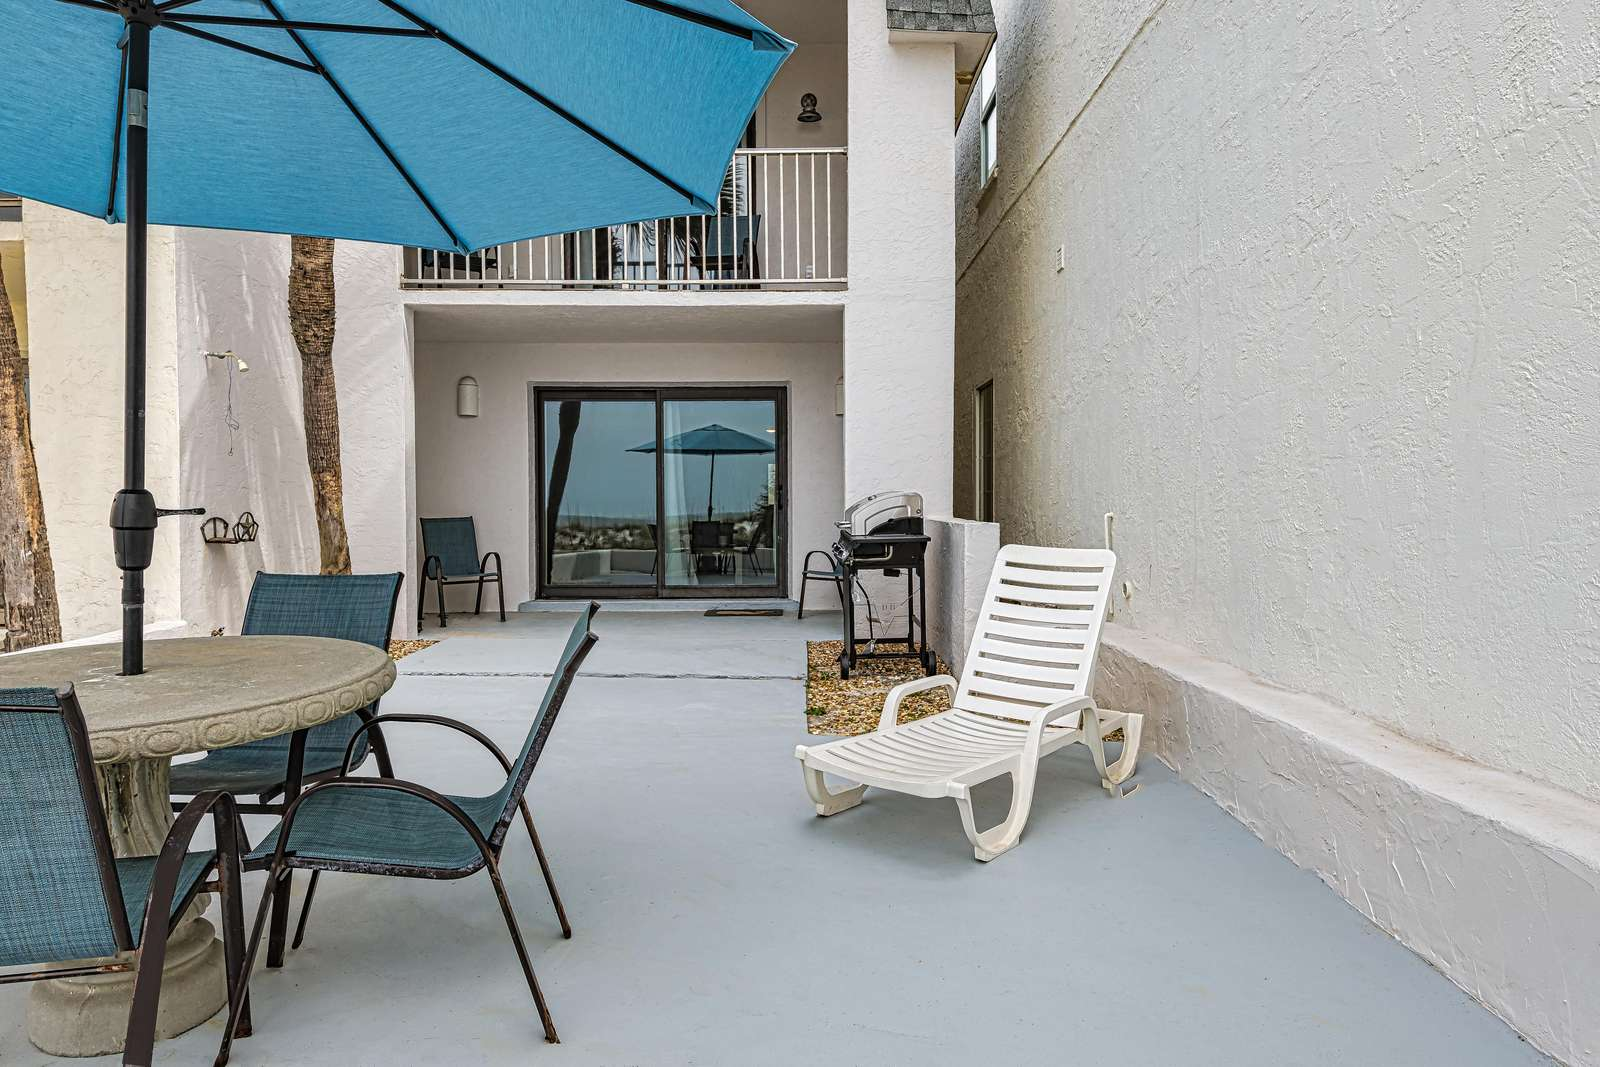 Spacious patio area with seating!